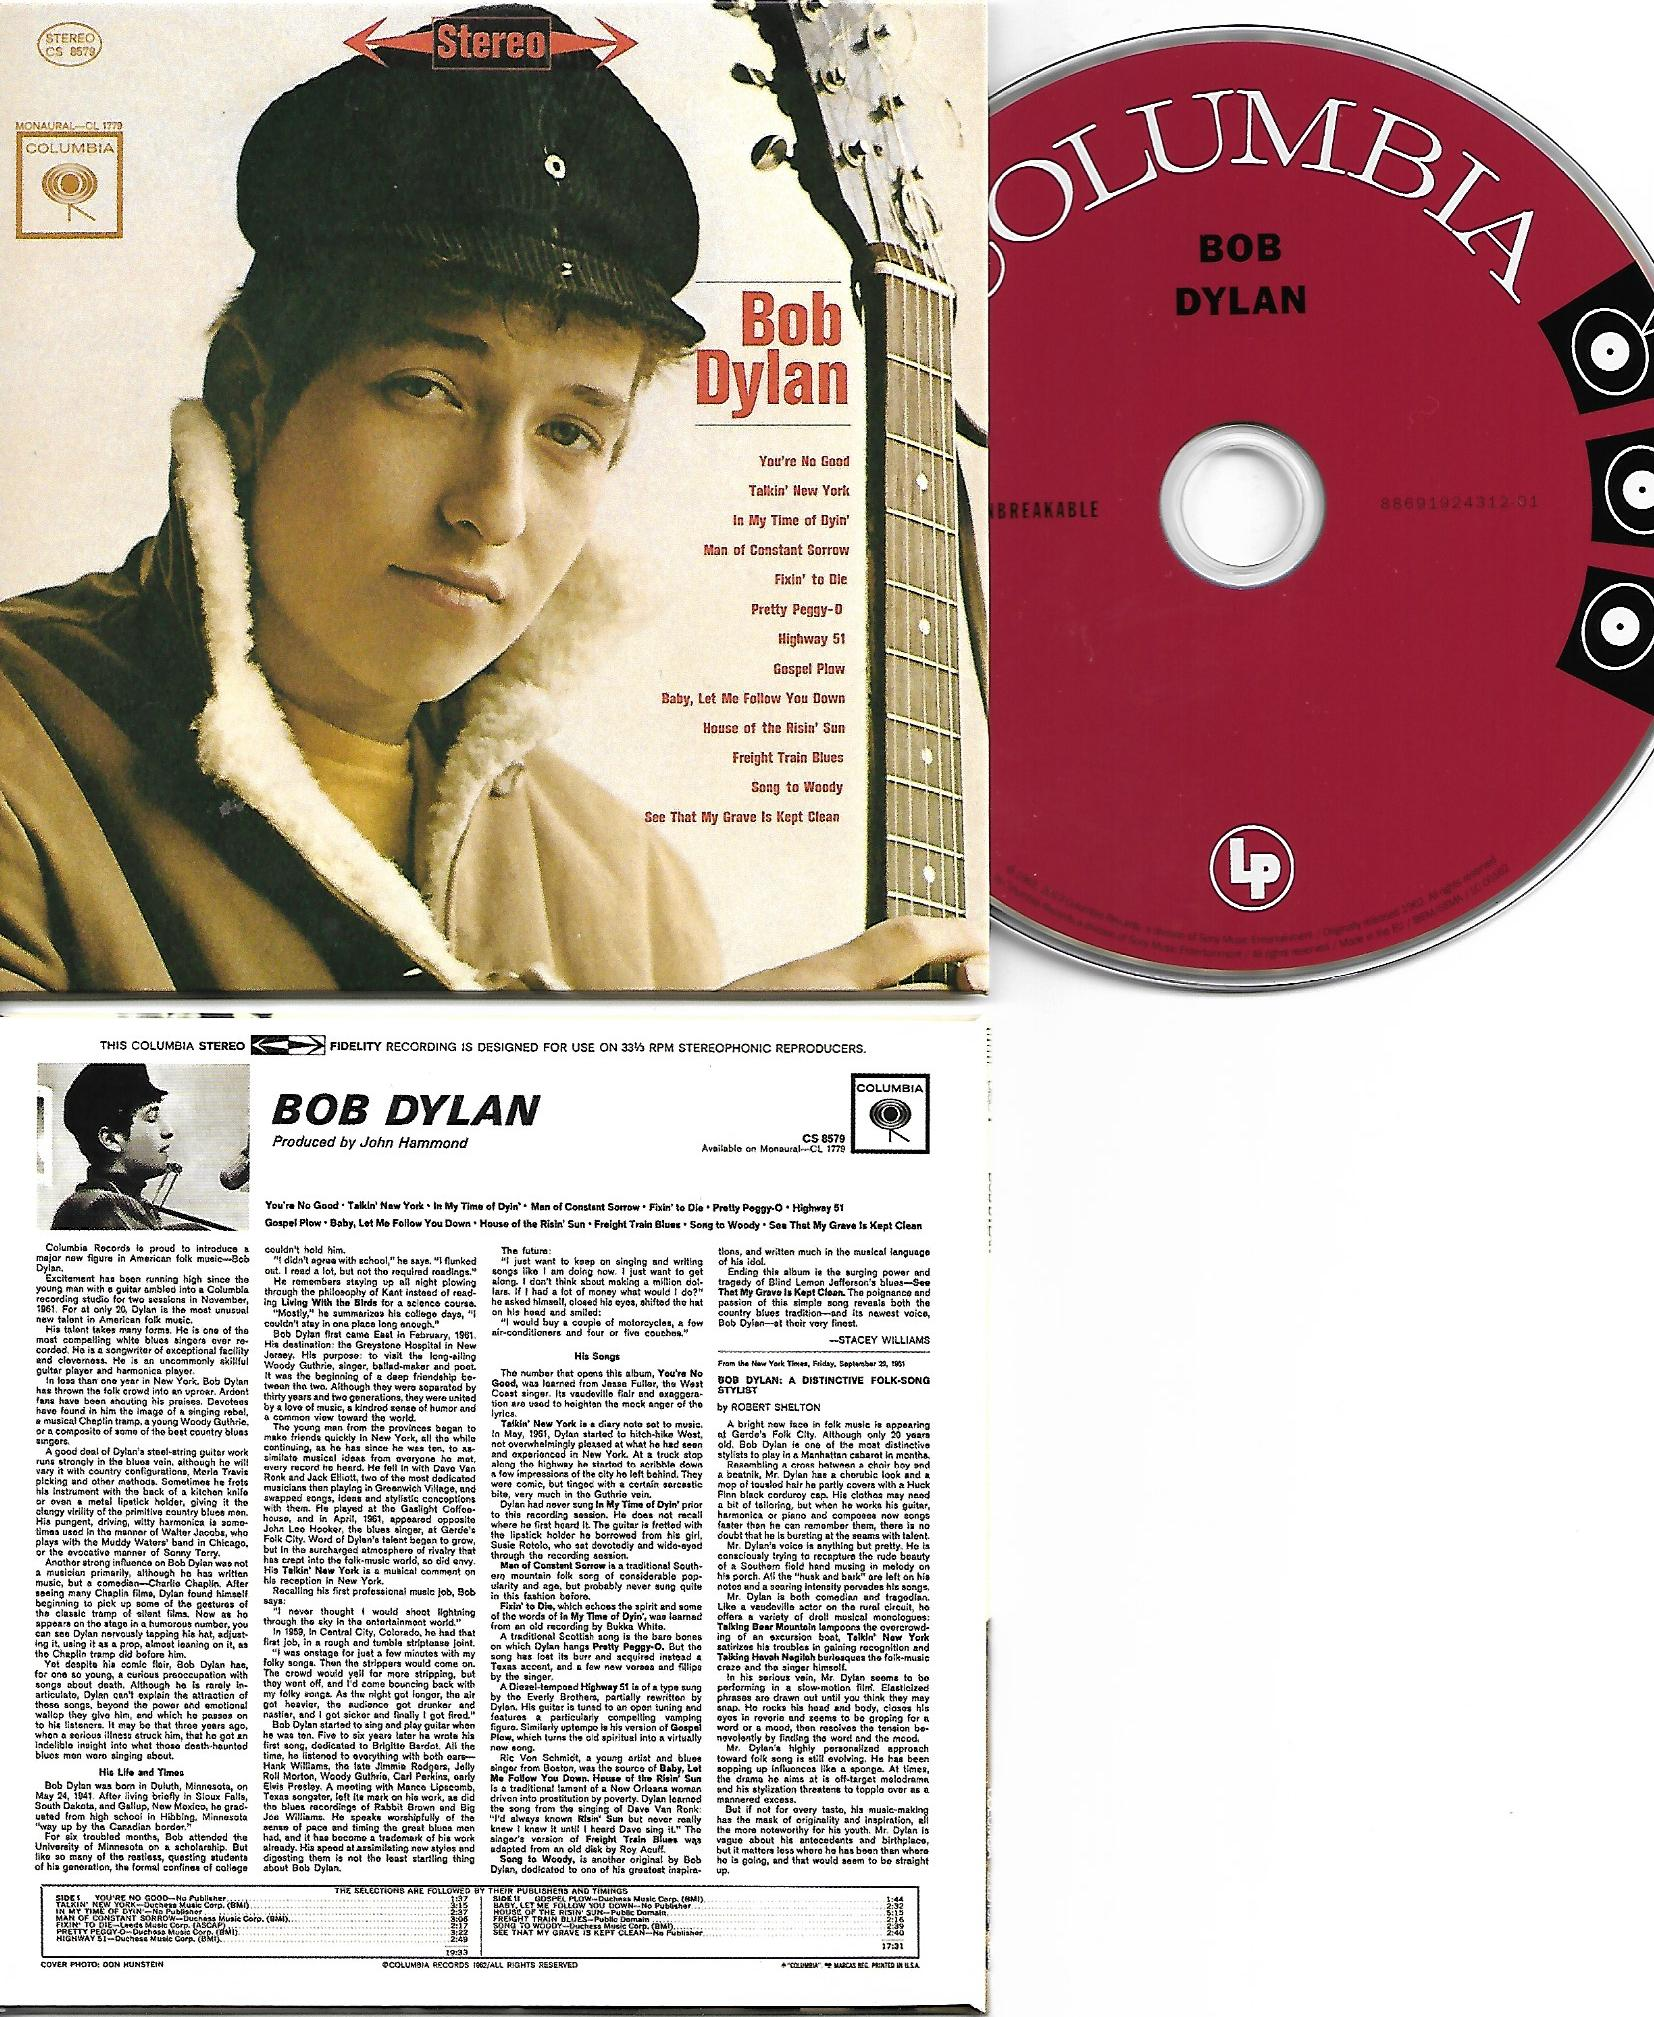 BOB DYLAN - Bob Dylan - First Album 1962 - MINI LP REPLICA CARD BOARD SLEEVE - CD